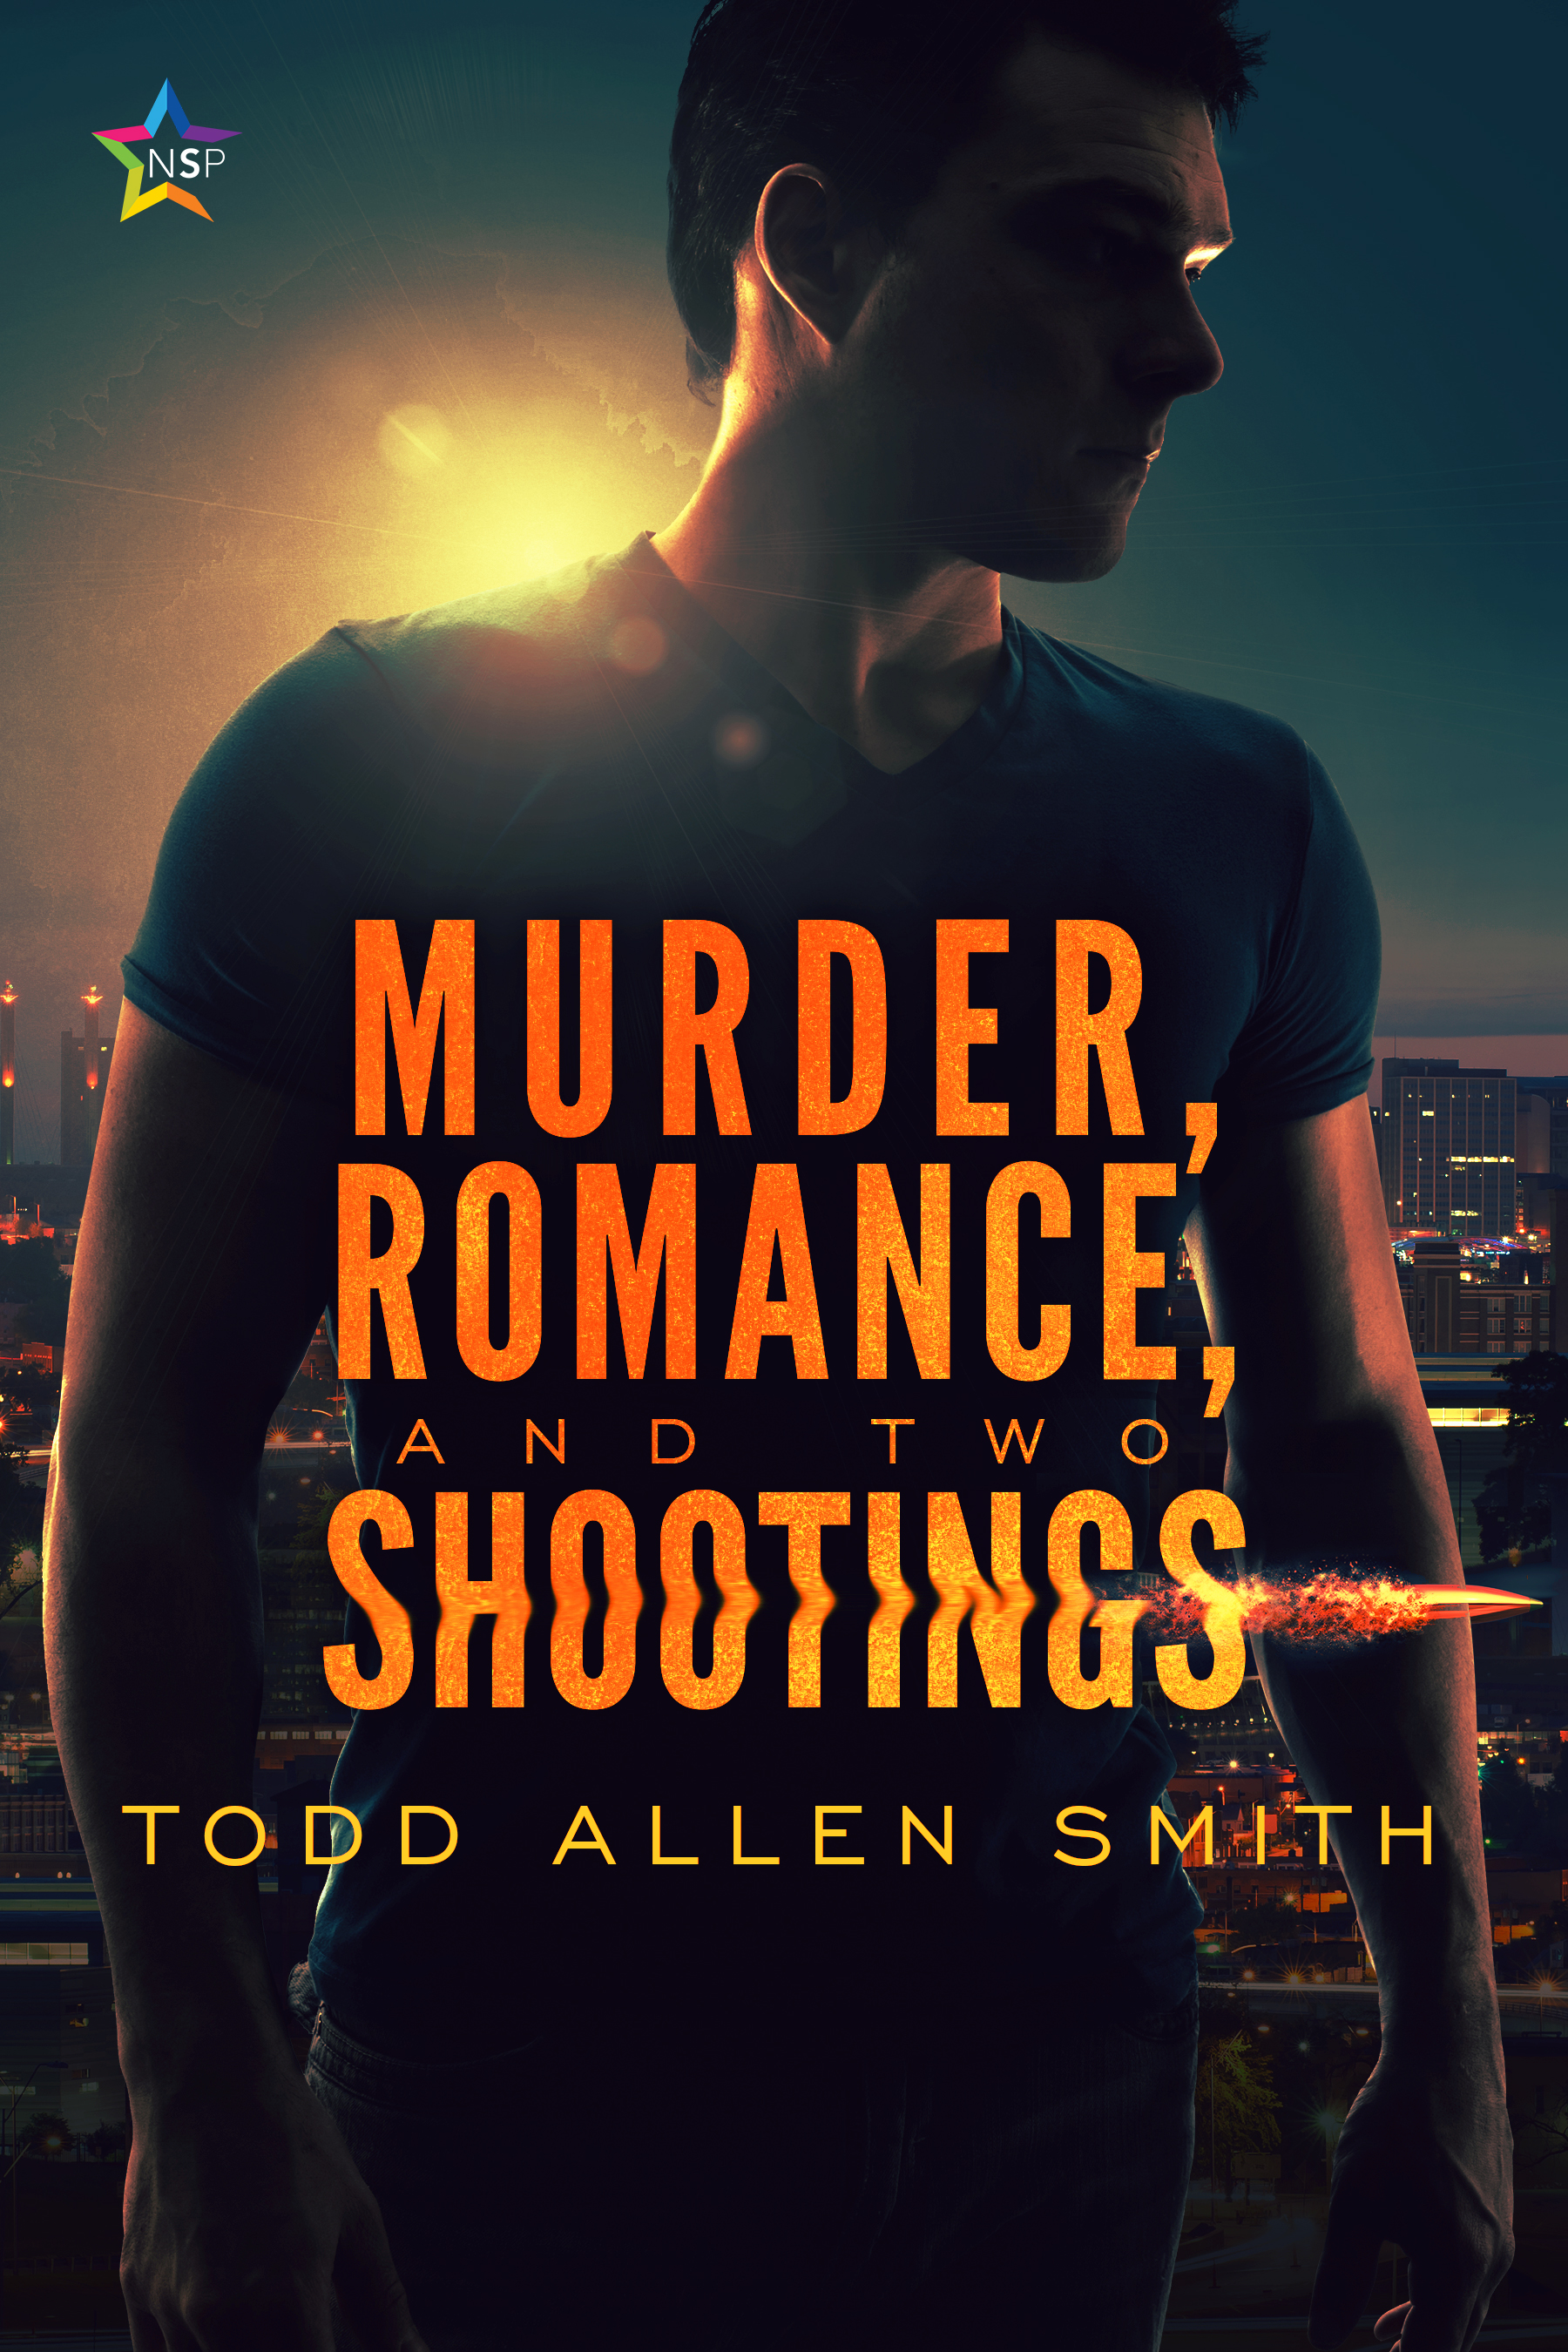 """""""Murder, Romance, and Two Shootings"""" is available on Amazon and Barnes & Noble."""